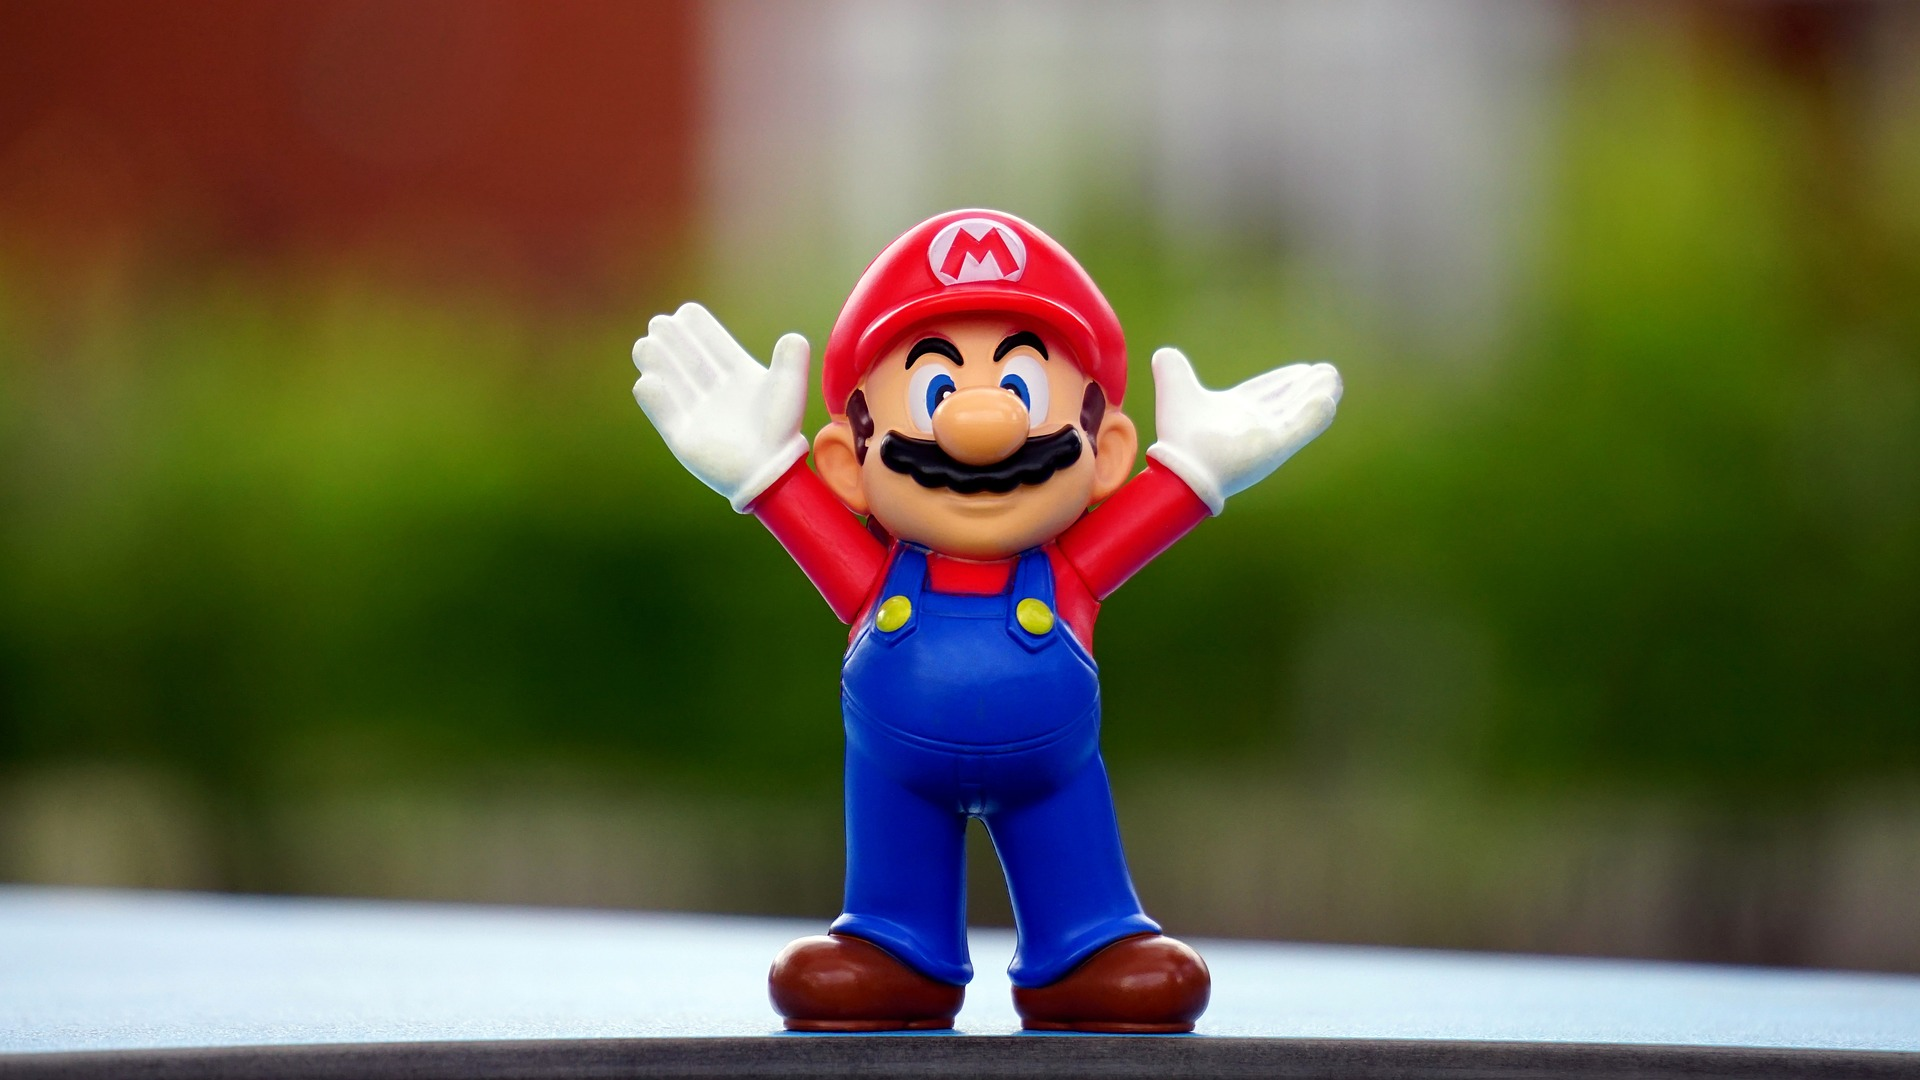 90s Mario figurine for cultural inspiration